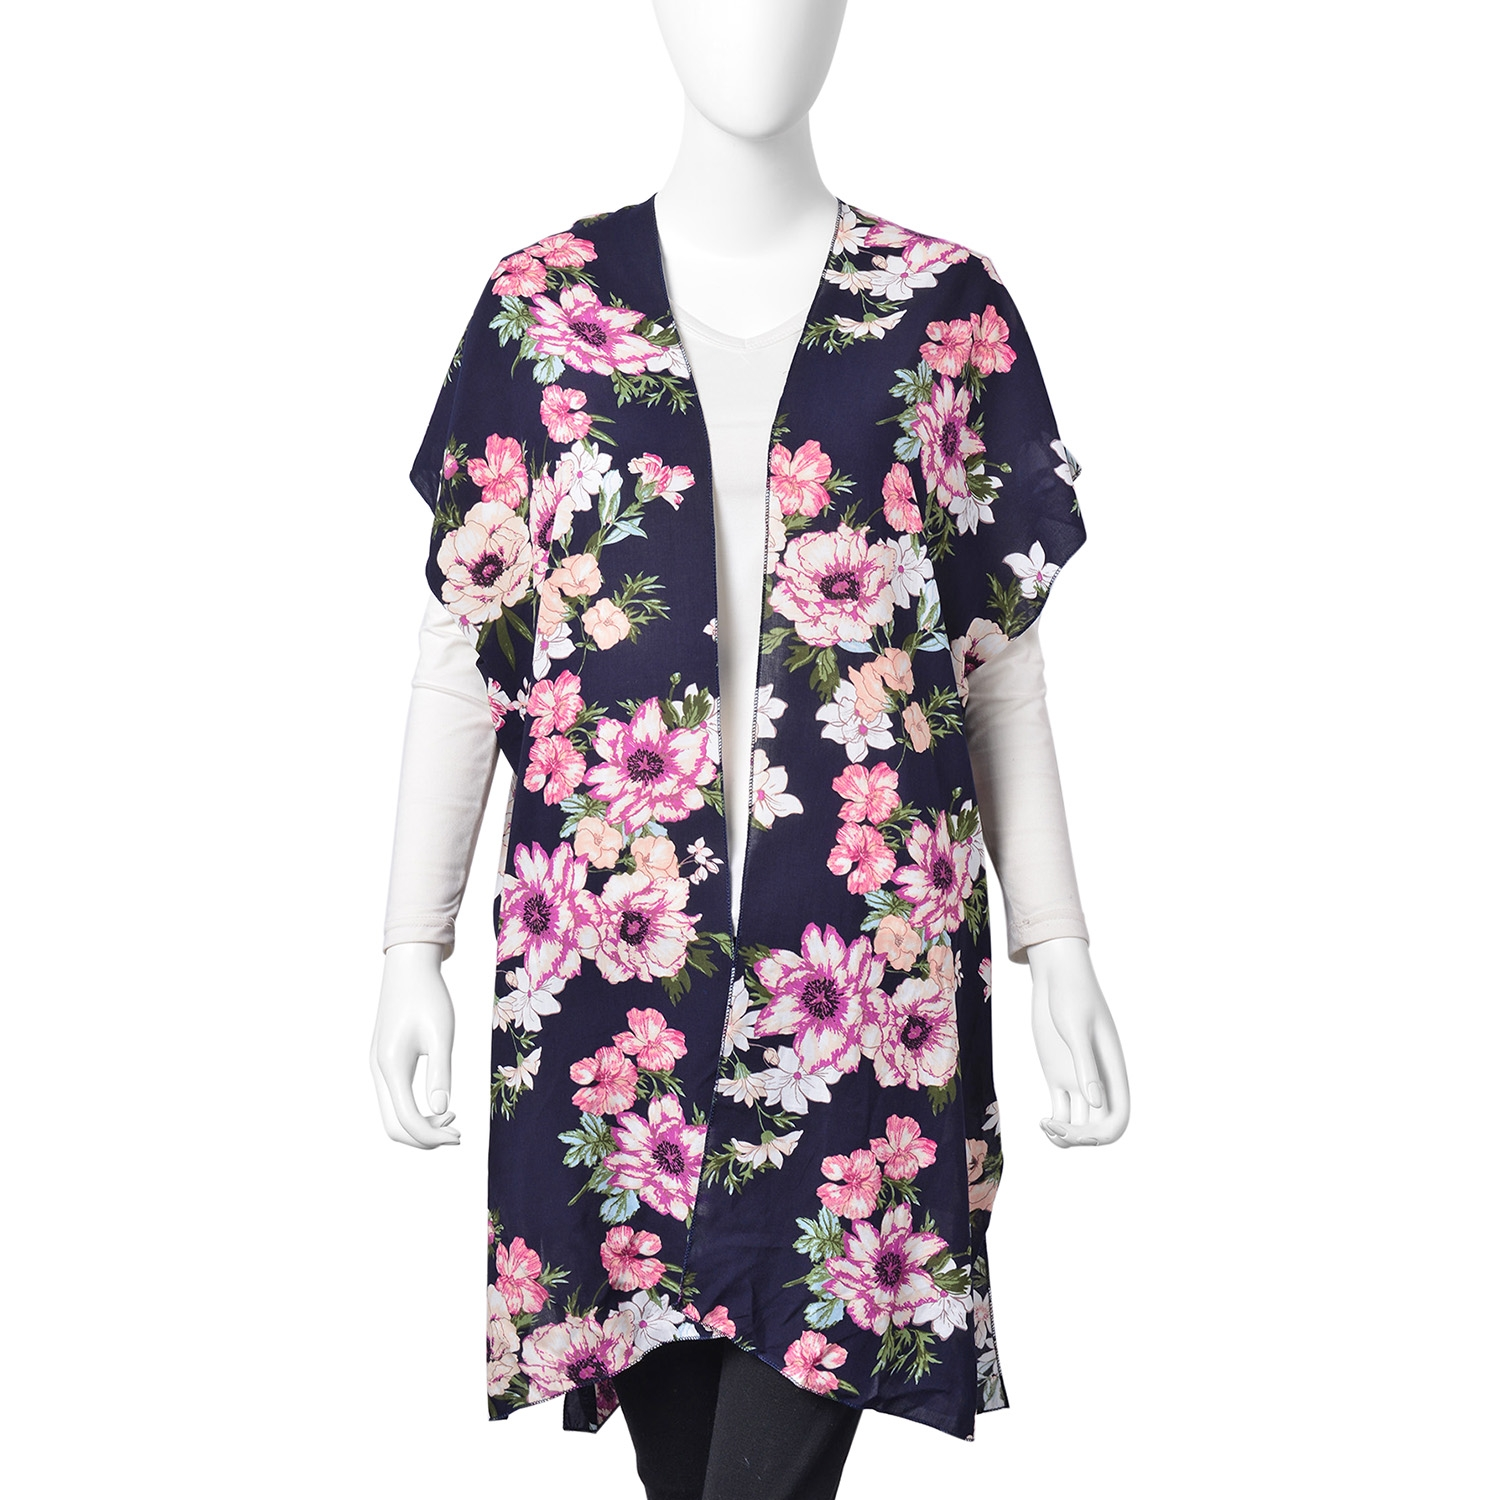 b628a4138 Black 100% Viscose Multi Color Flower Print Open Sleeveless Cardigan (One  Size) | Shop LC